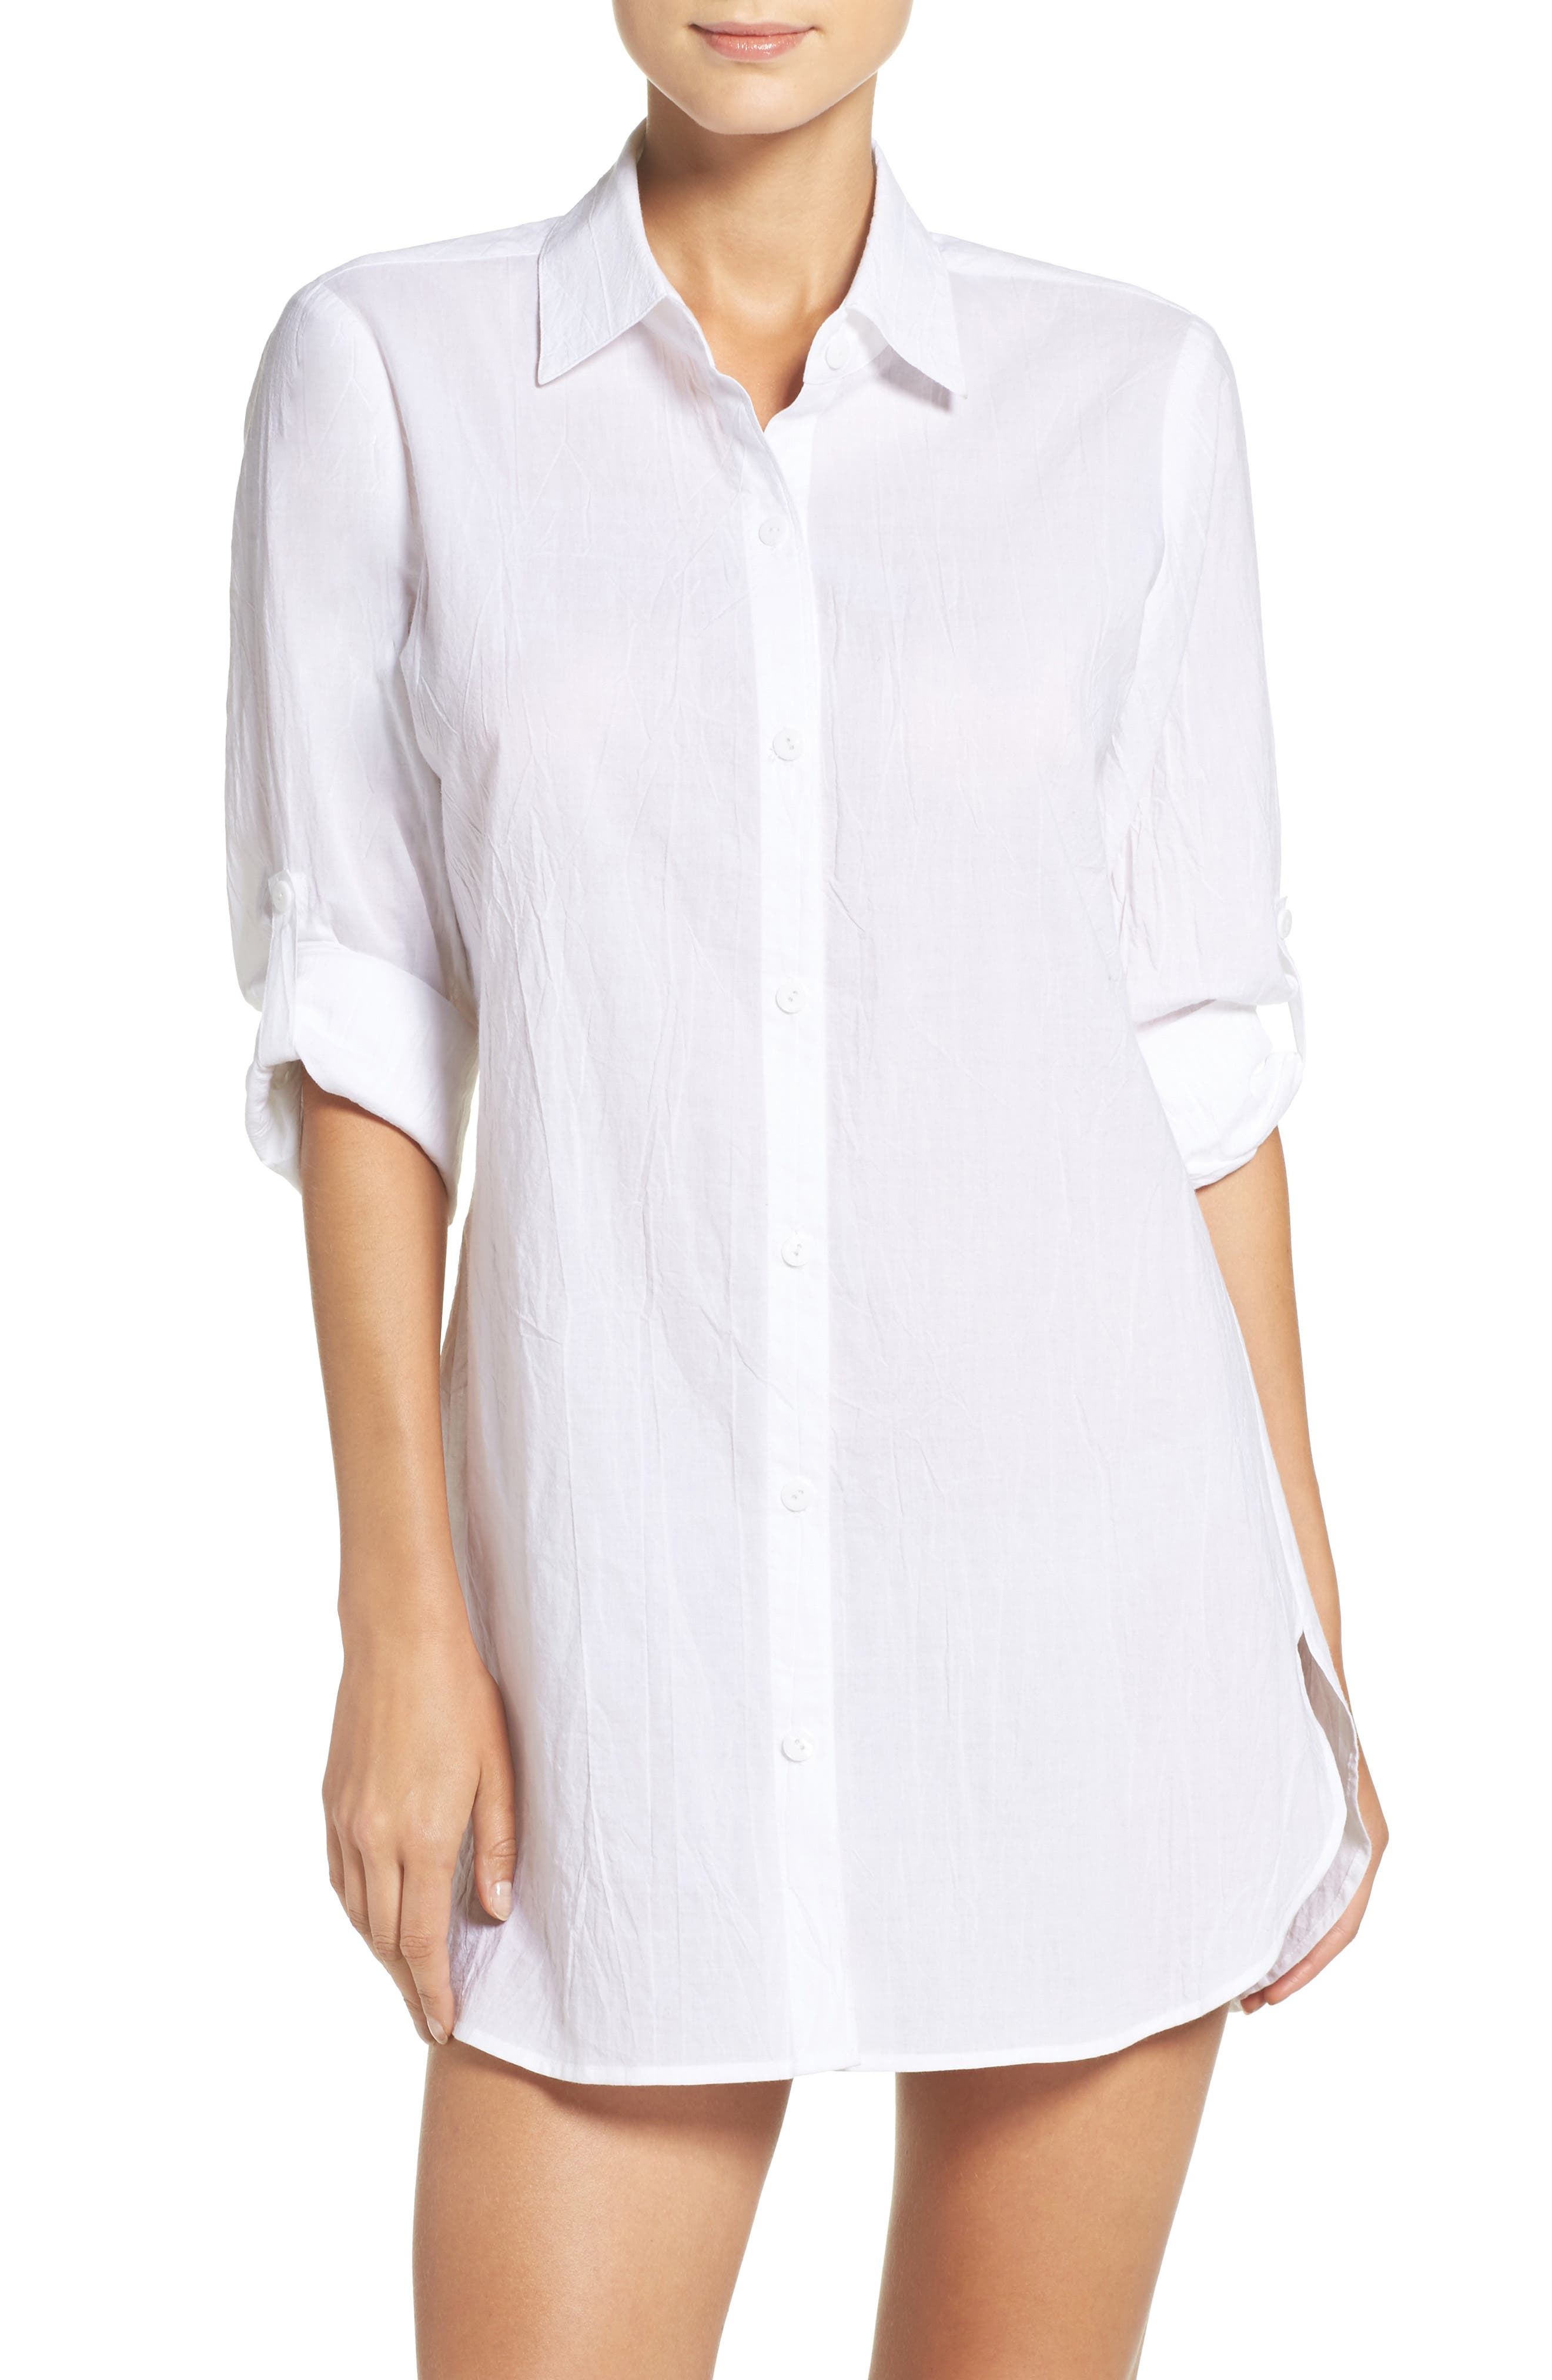 Main Image - Tommy Bahama Boyfriend Shirt Cover-Up